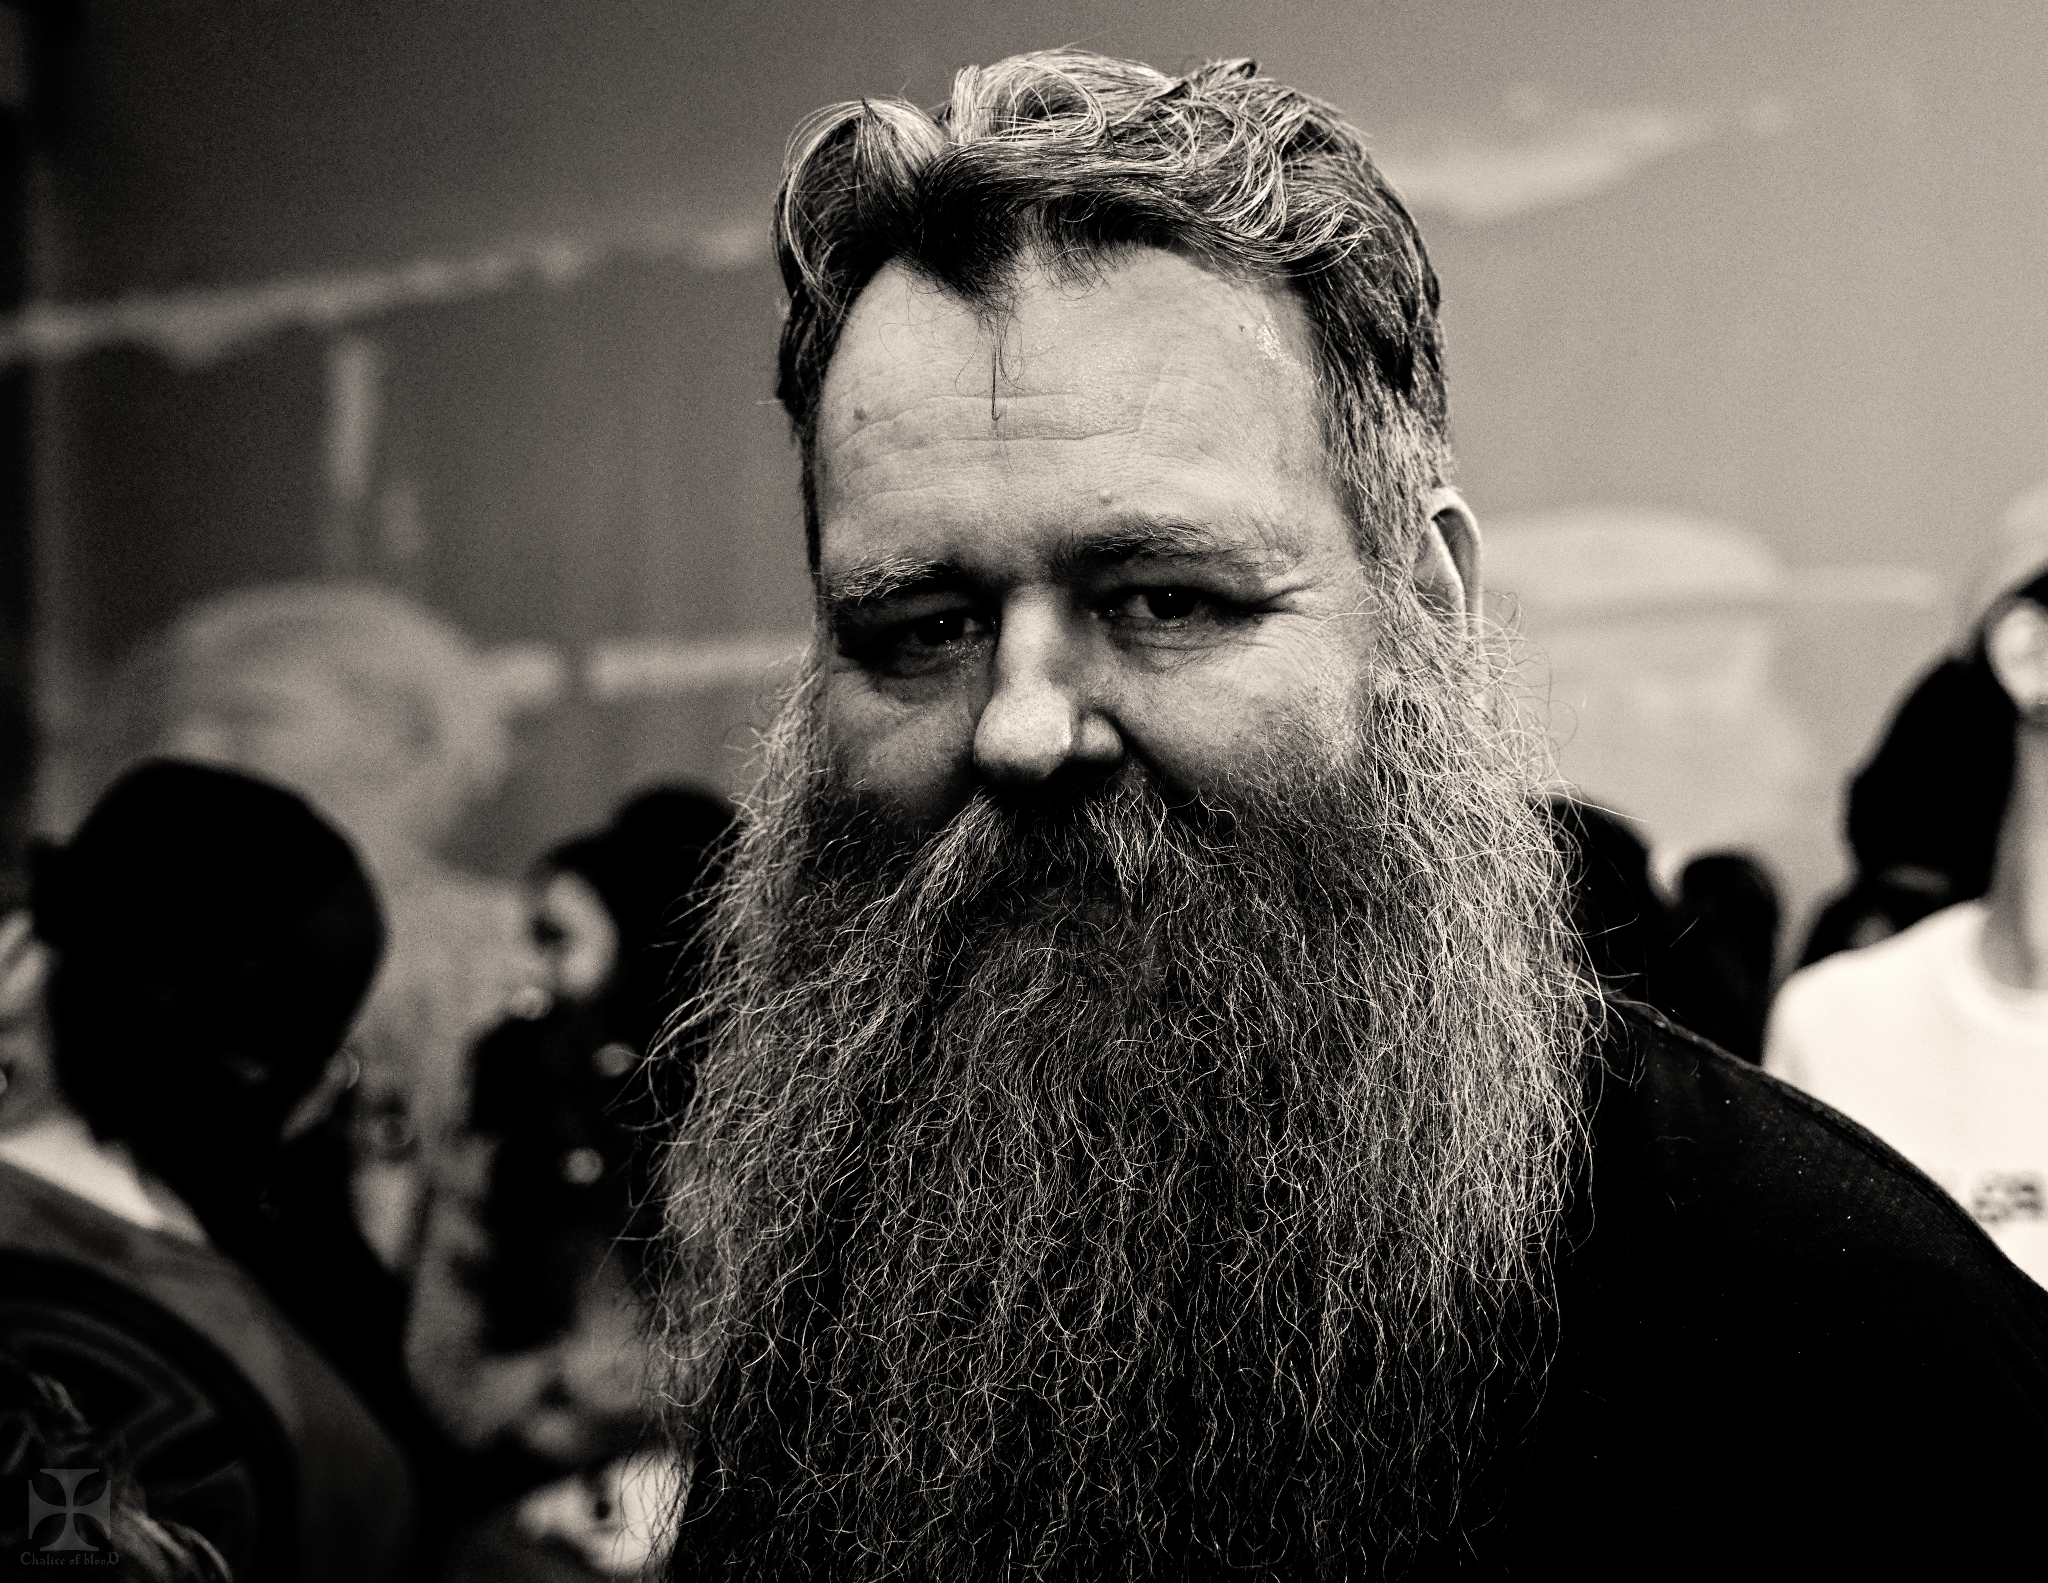 2018.09 5th Beard and Moustache Competition - 0033Copy 1-Exposure.jpg